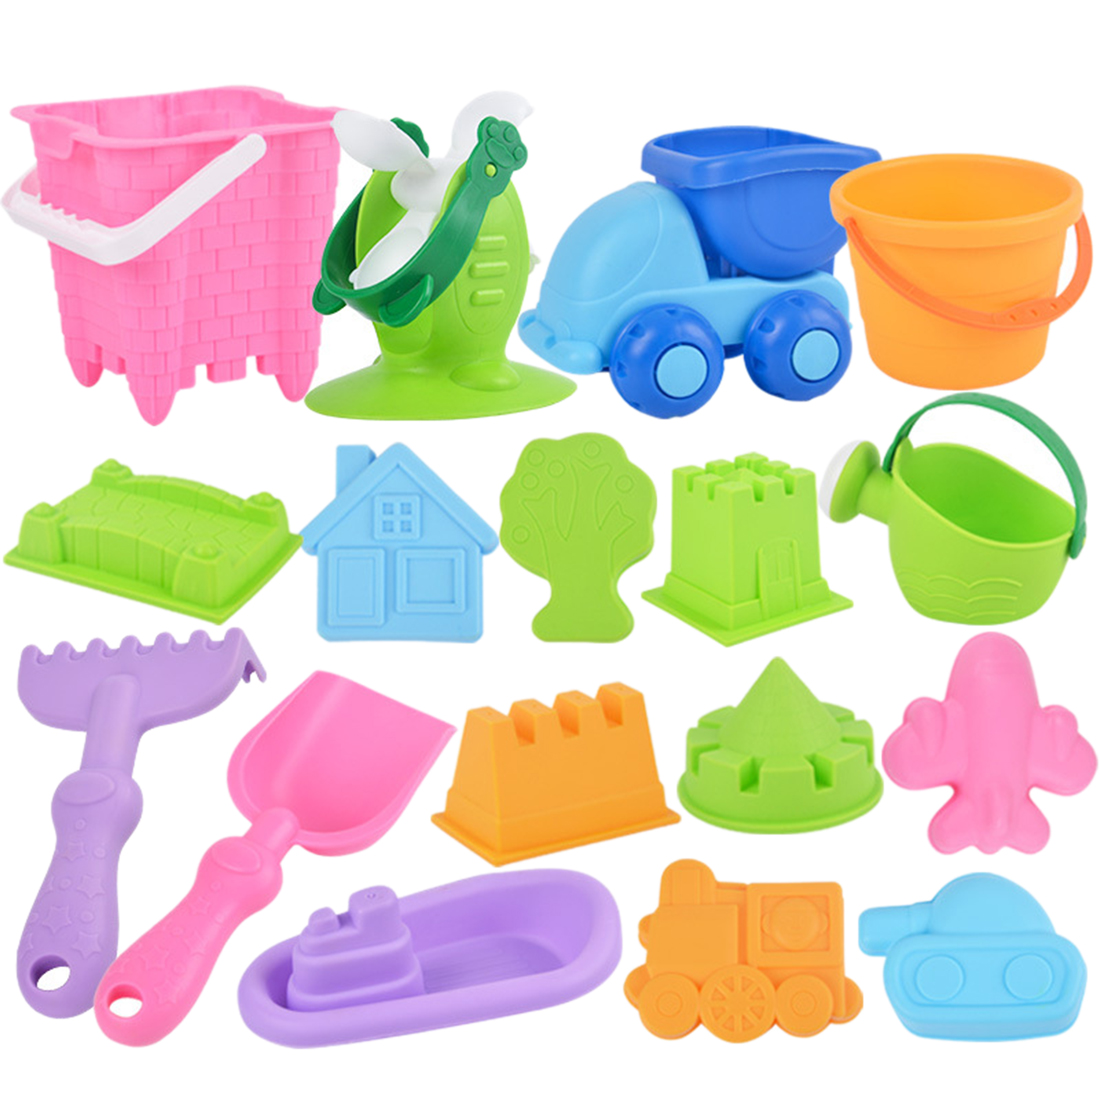 17Pcs/set Soft Plastic Beach Sand Toys Sand Water Playset Seaside Bucket Shovel Sand Set For Children Drop Ship - Color Random